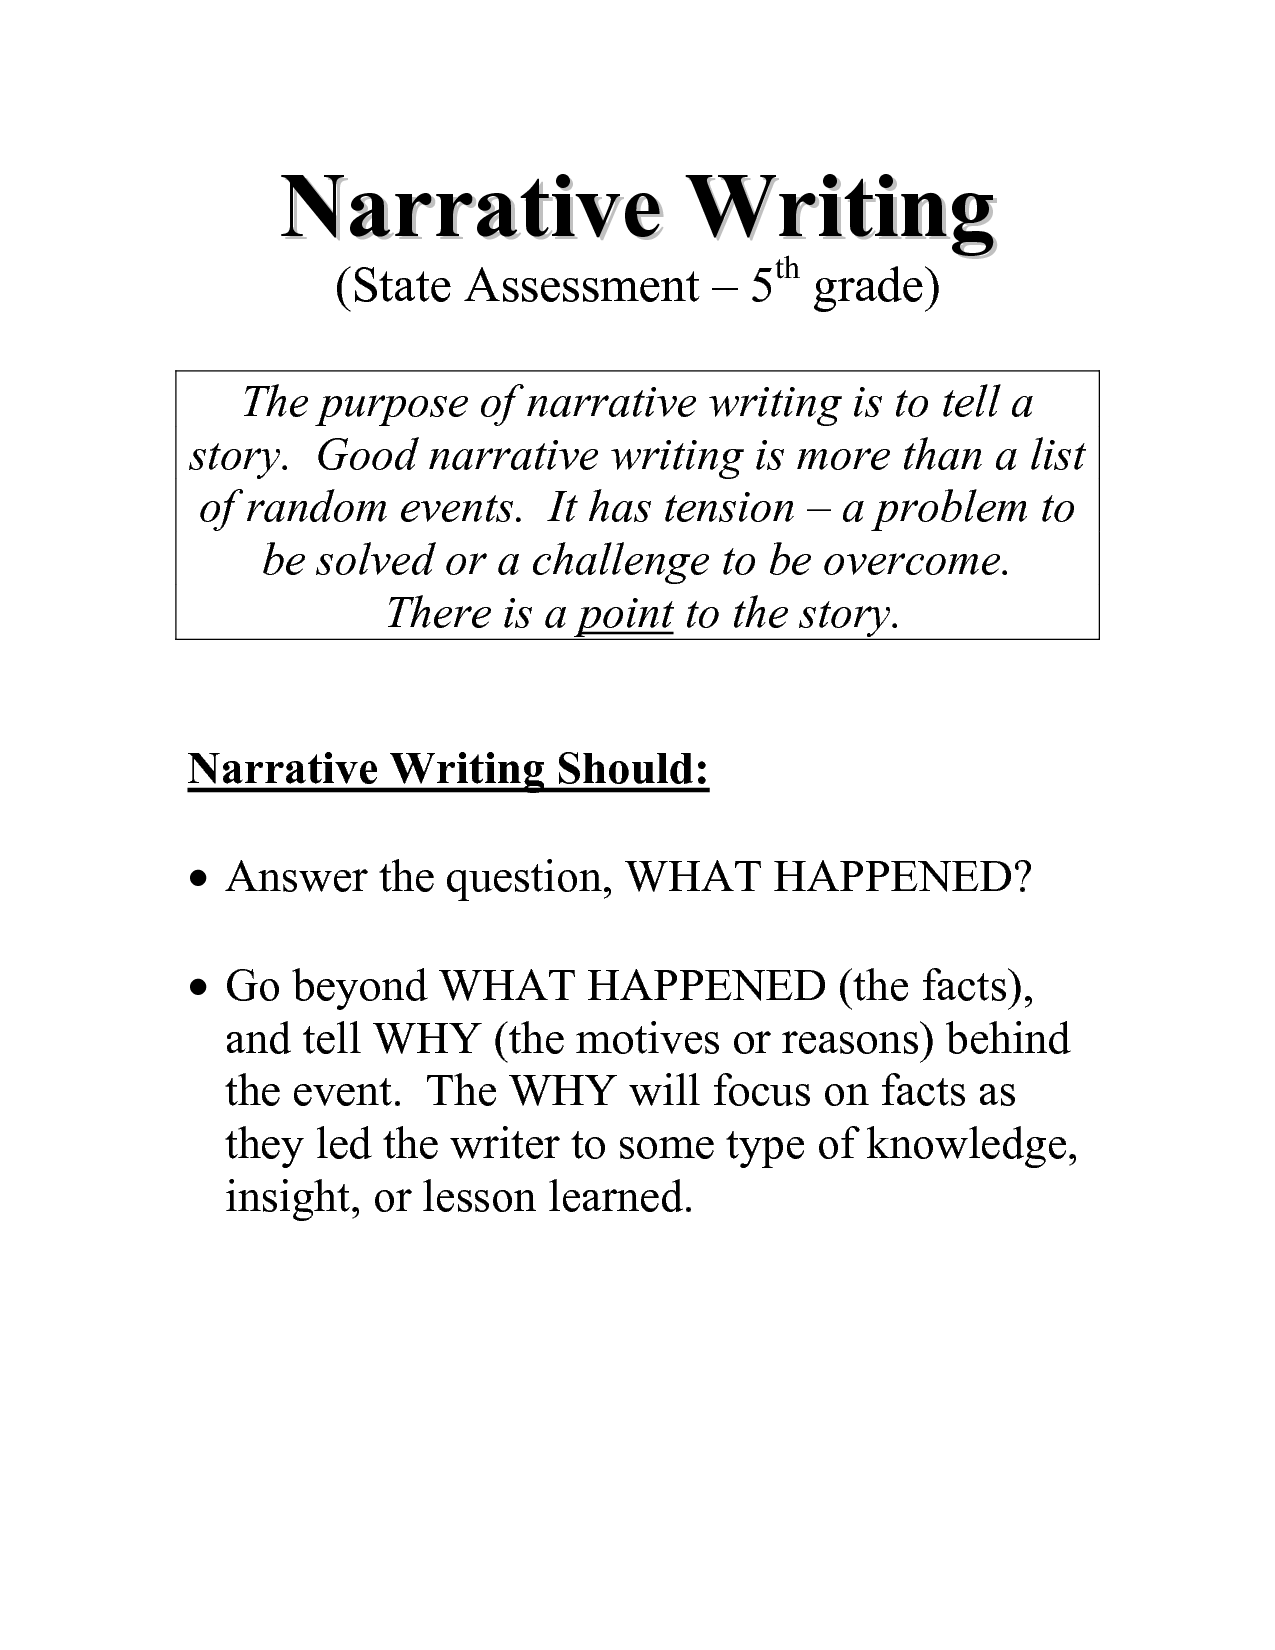 004 Good Narrative Essay Samples In Word Writing Prompt For